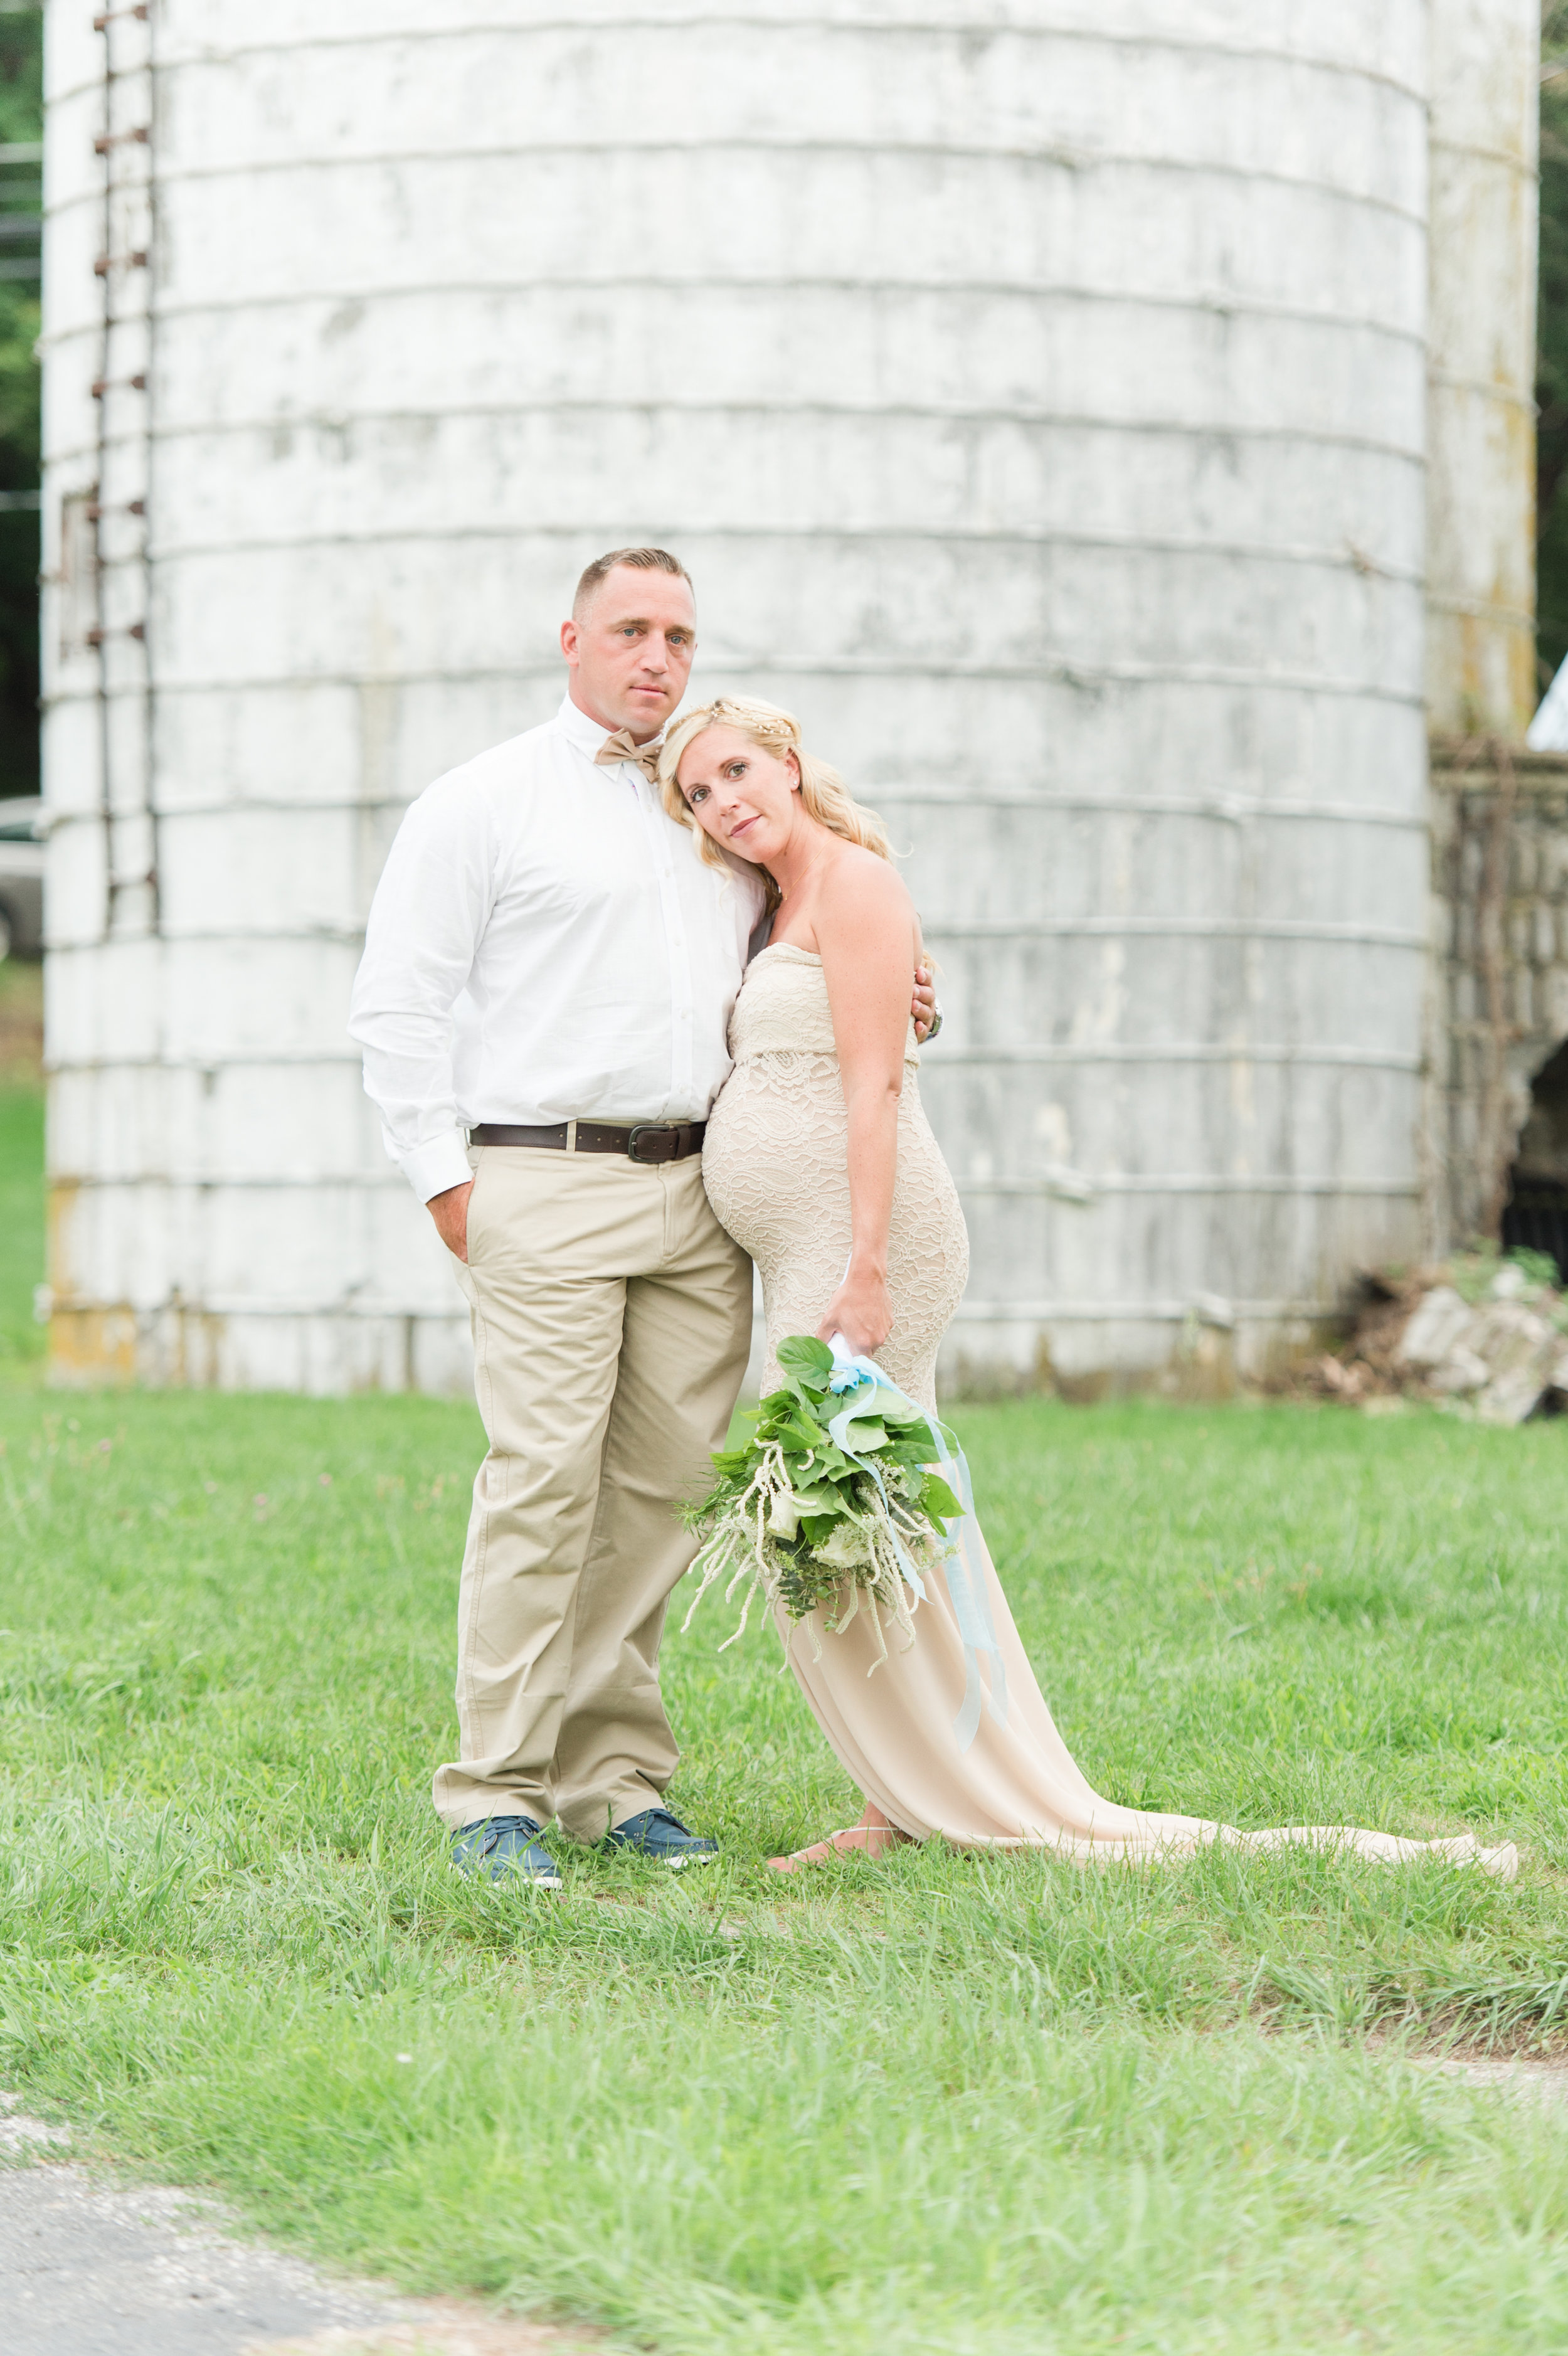 Appalachian Trail Rustic Chic Maternity Session - Something Blue Wedding Photography